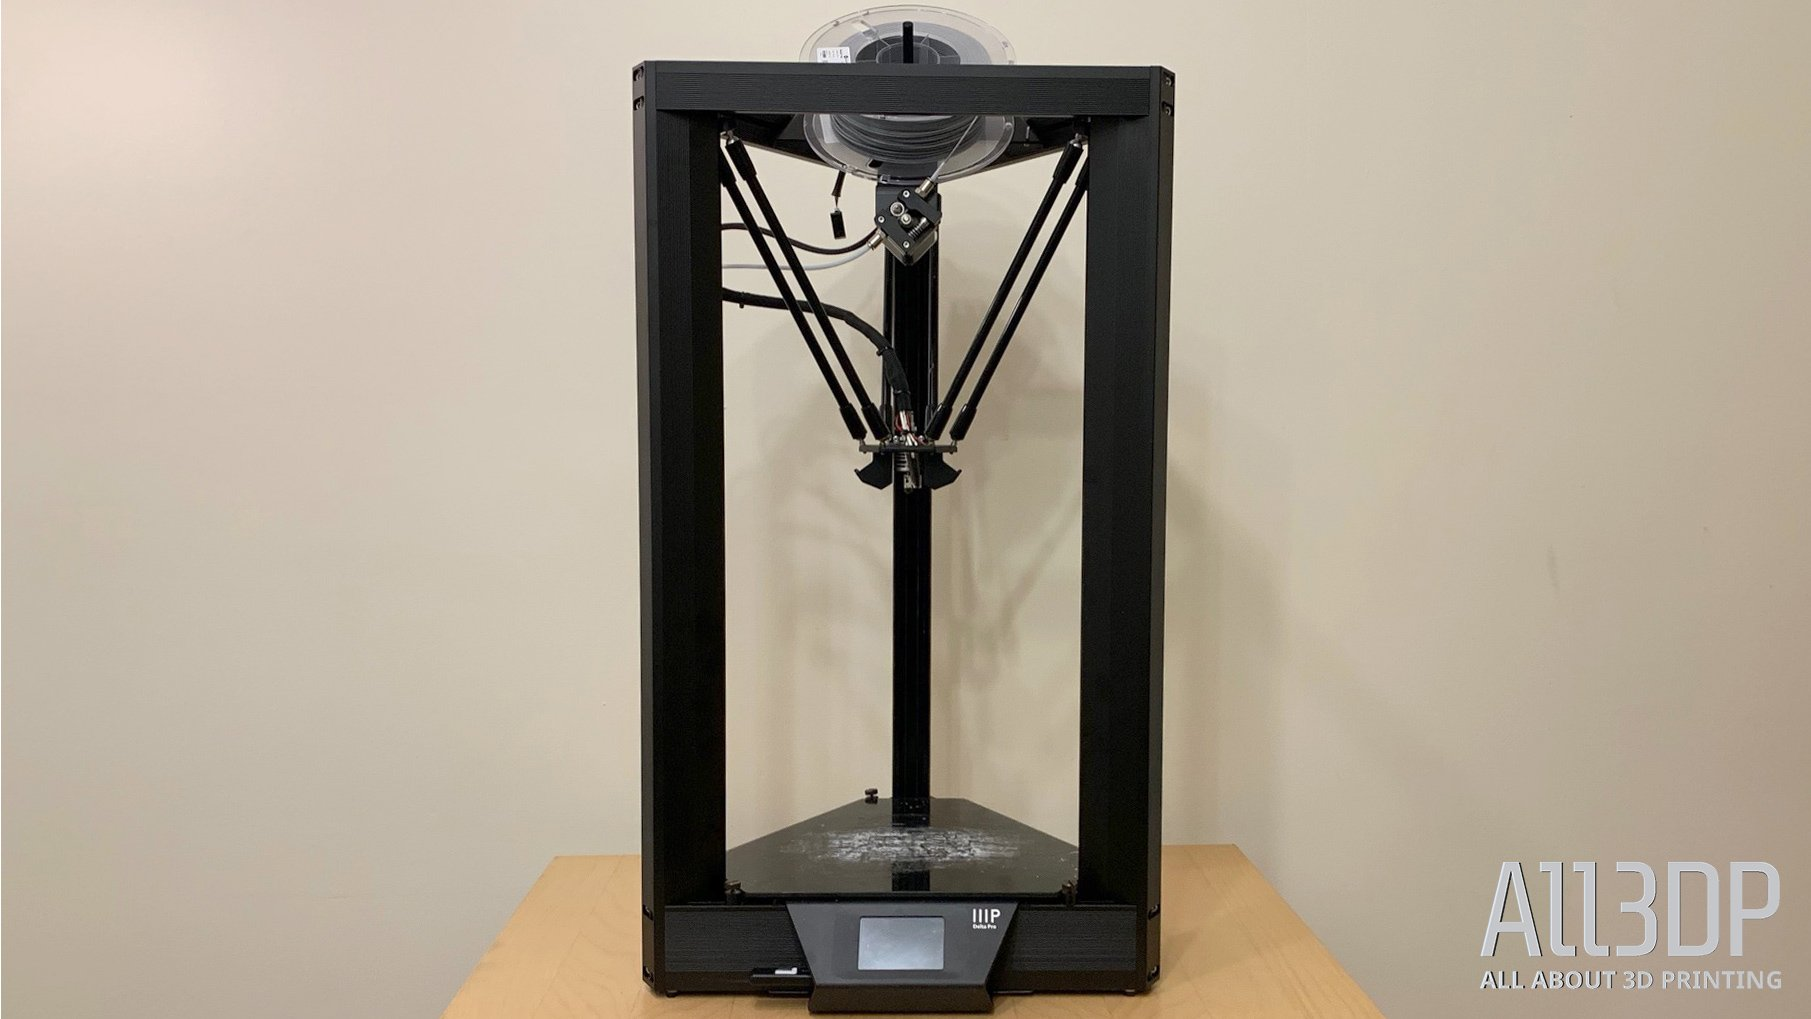 Monoprice Delta Pro Review: A First-Rate 3D Printer | All3DP